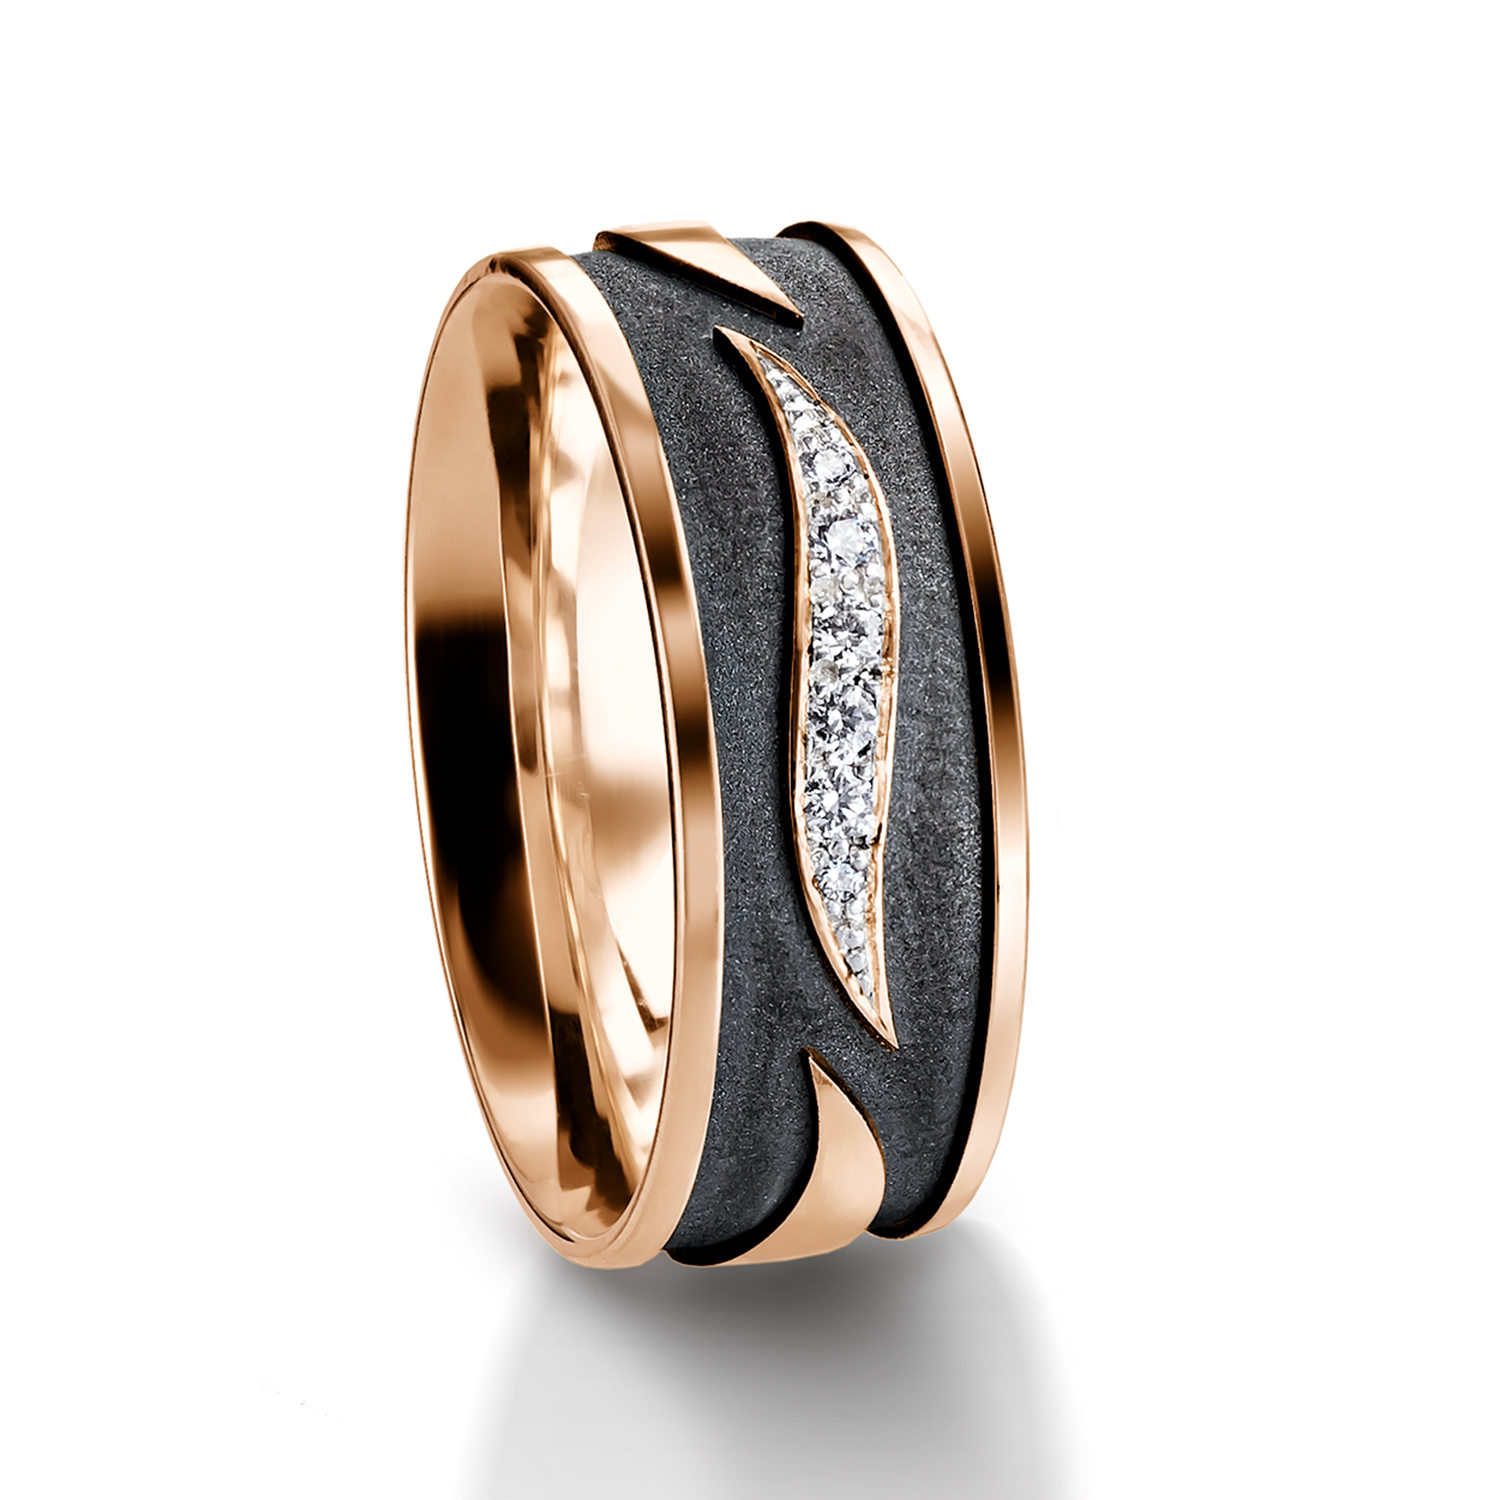 Diamond rings in gold, platinum with diamonds Furrer Jacot